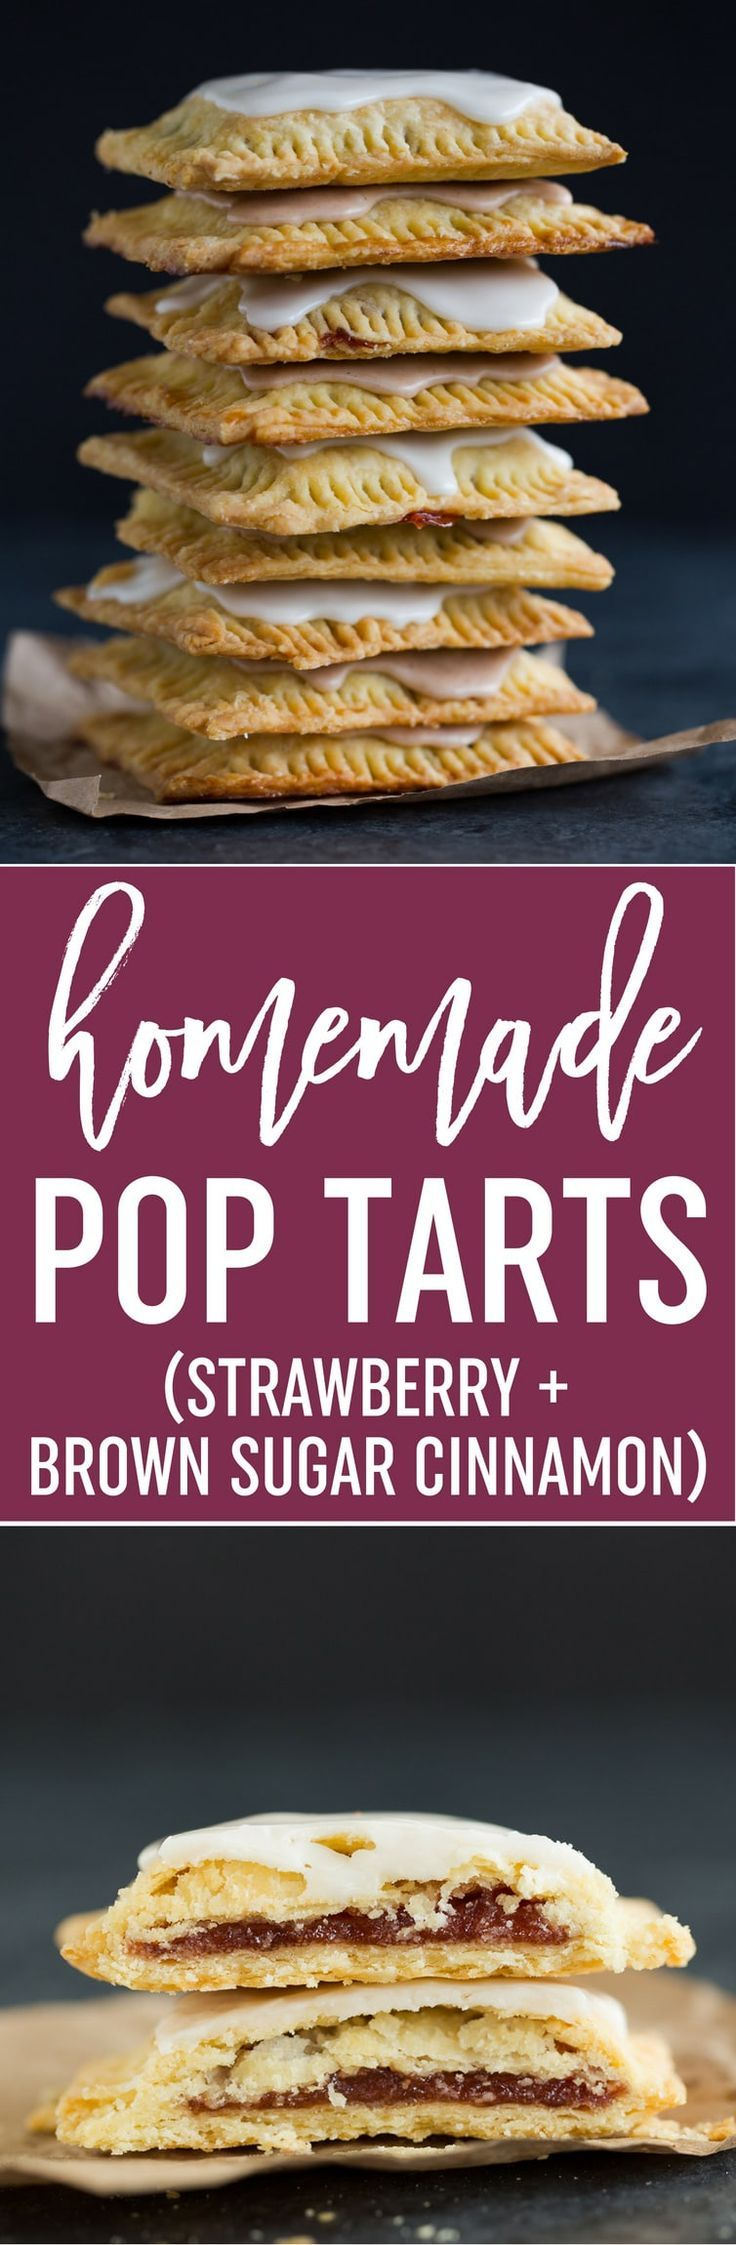 Homemade Pop Tarts - A super easy homemade pastry crust with strawberry and brown sugar cinnamon fillings. And they're frosted, of course! Make it your next weekend baking project! via @browneyedbaker